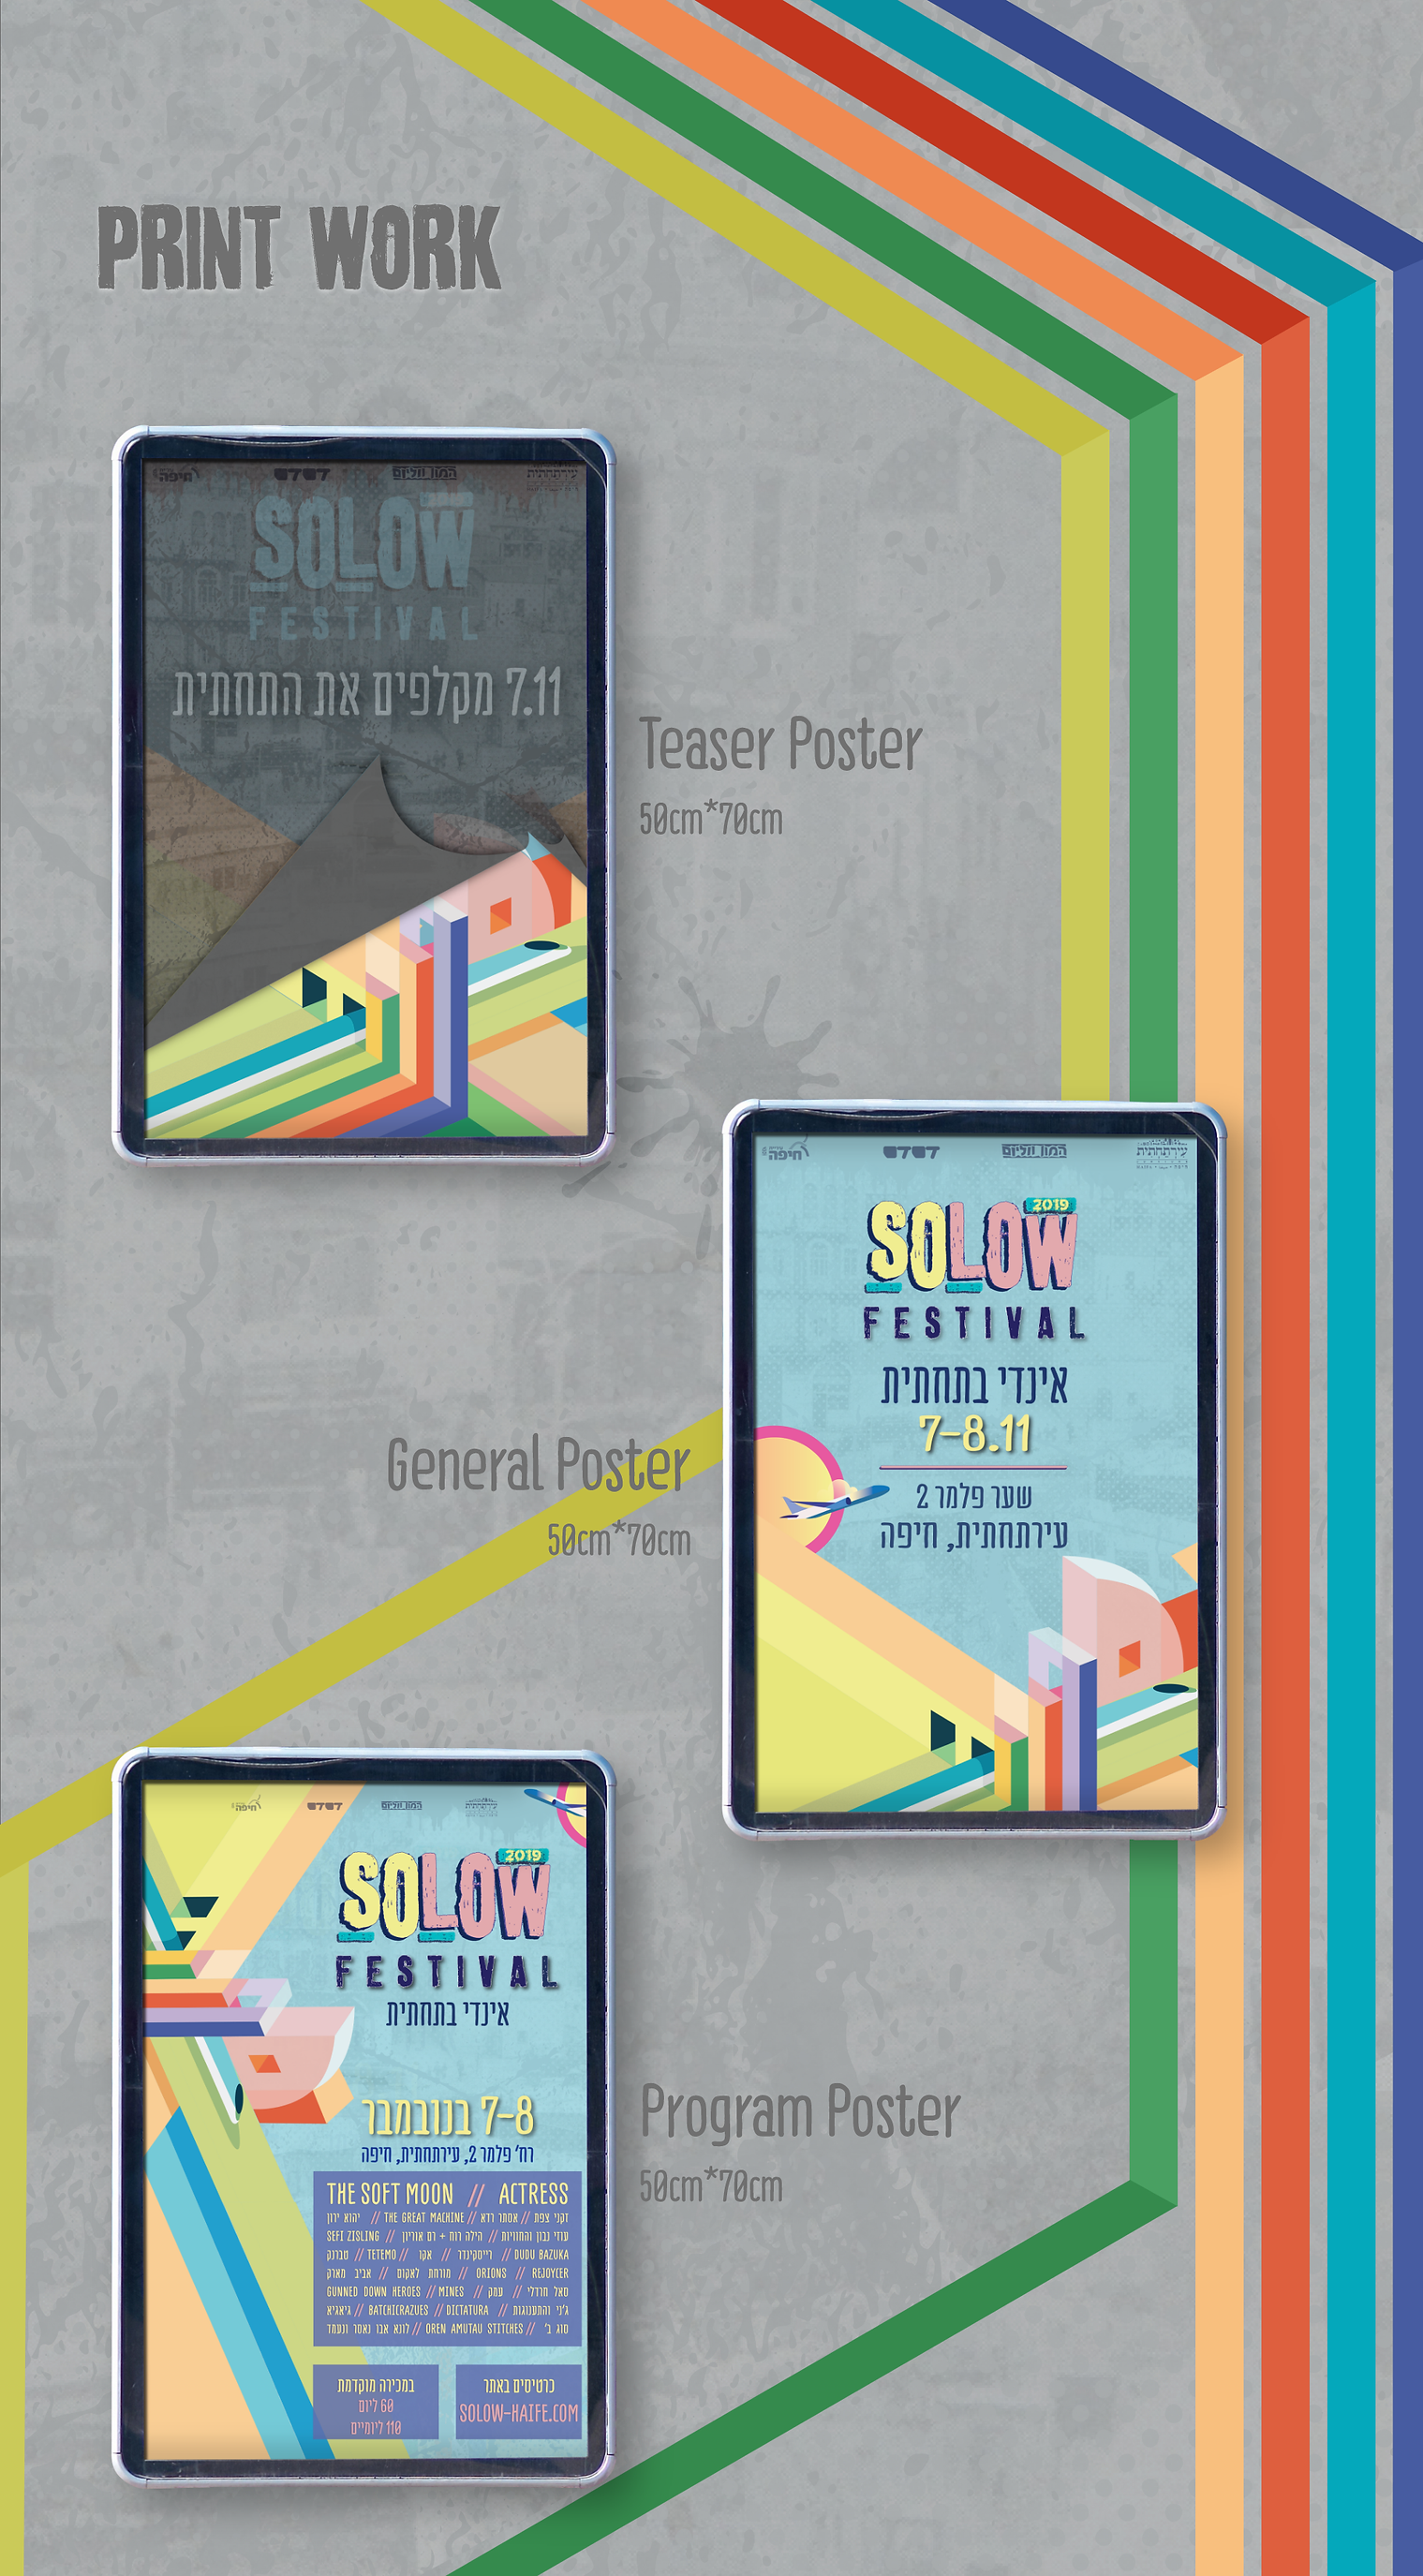 solow-final-site_03.png